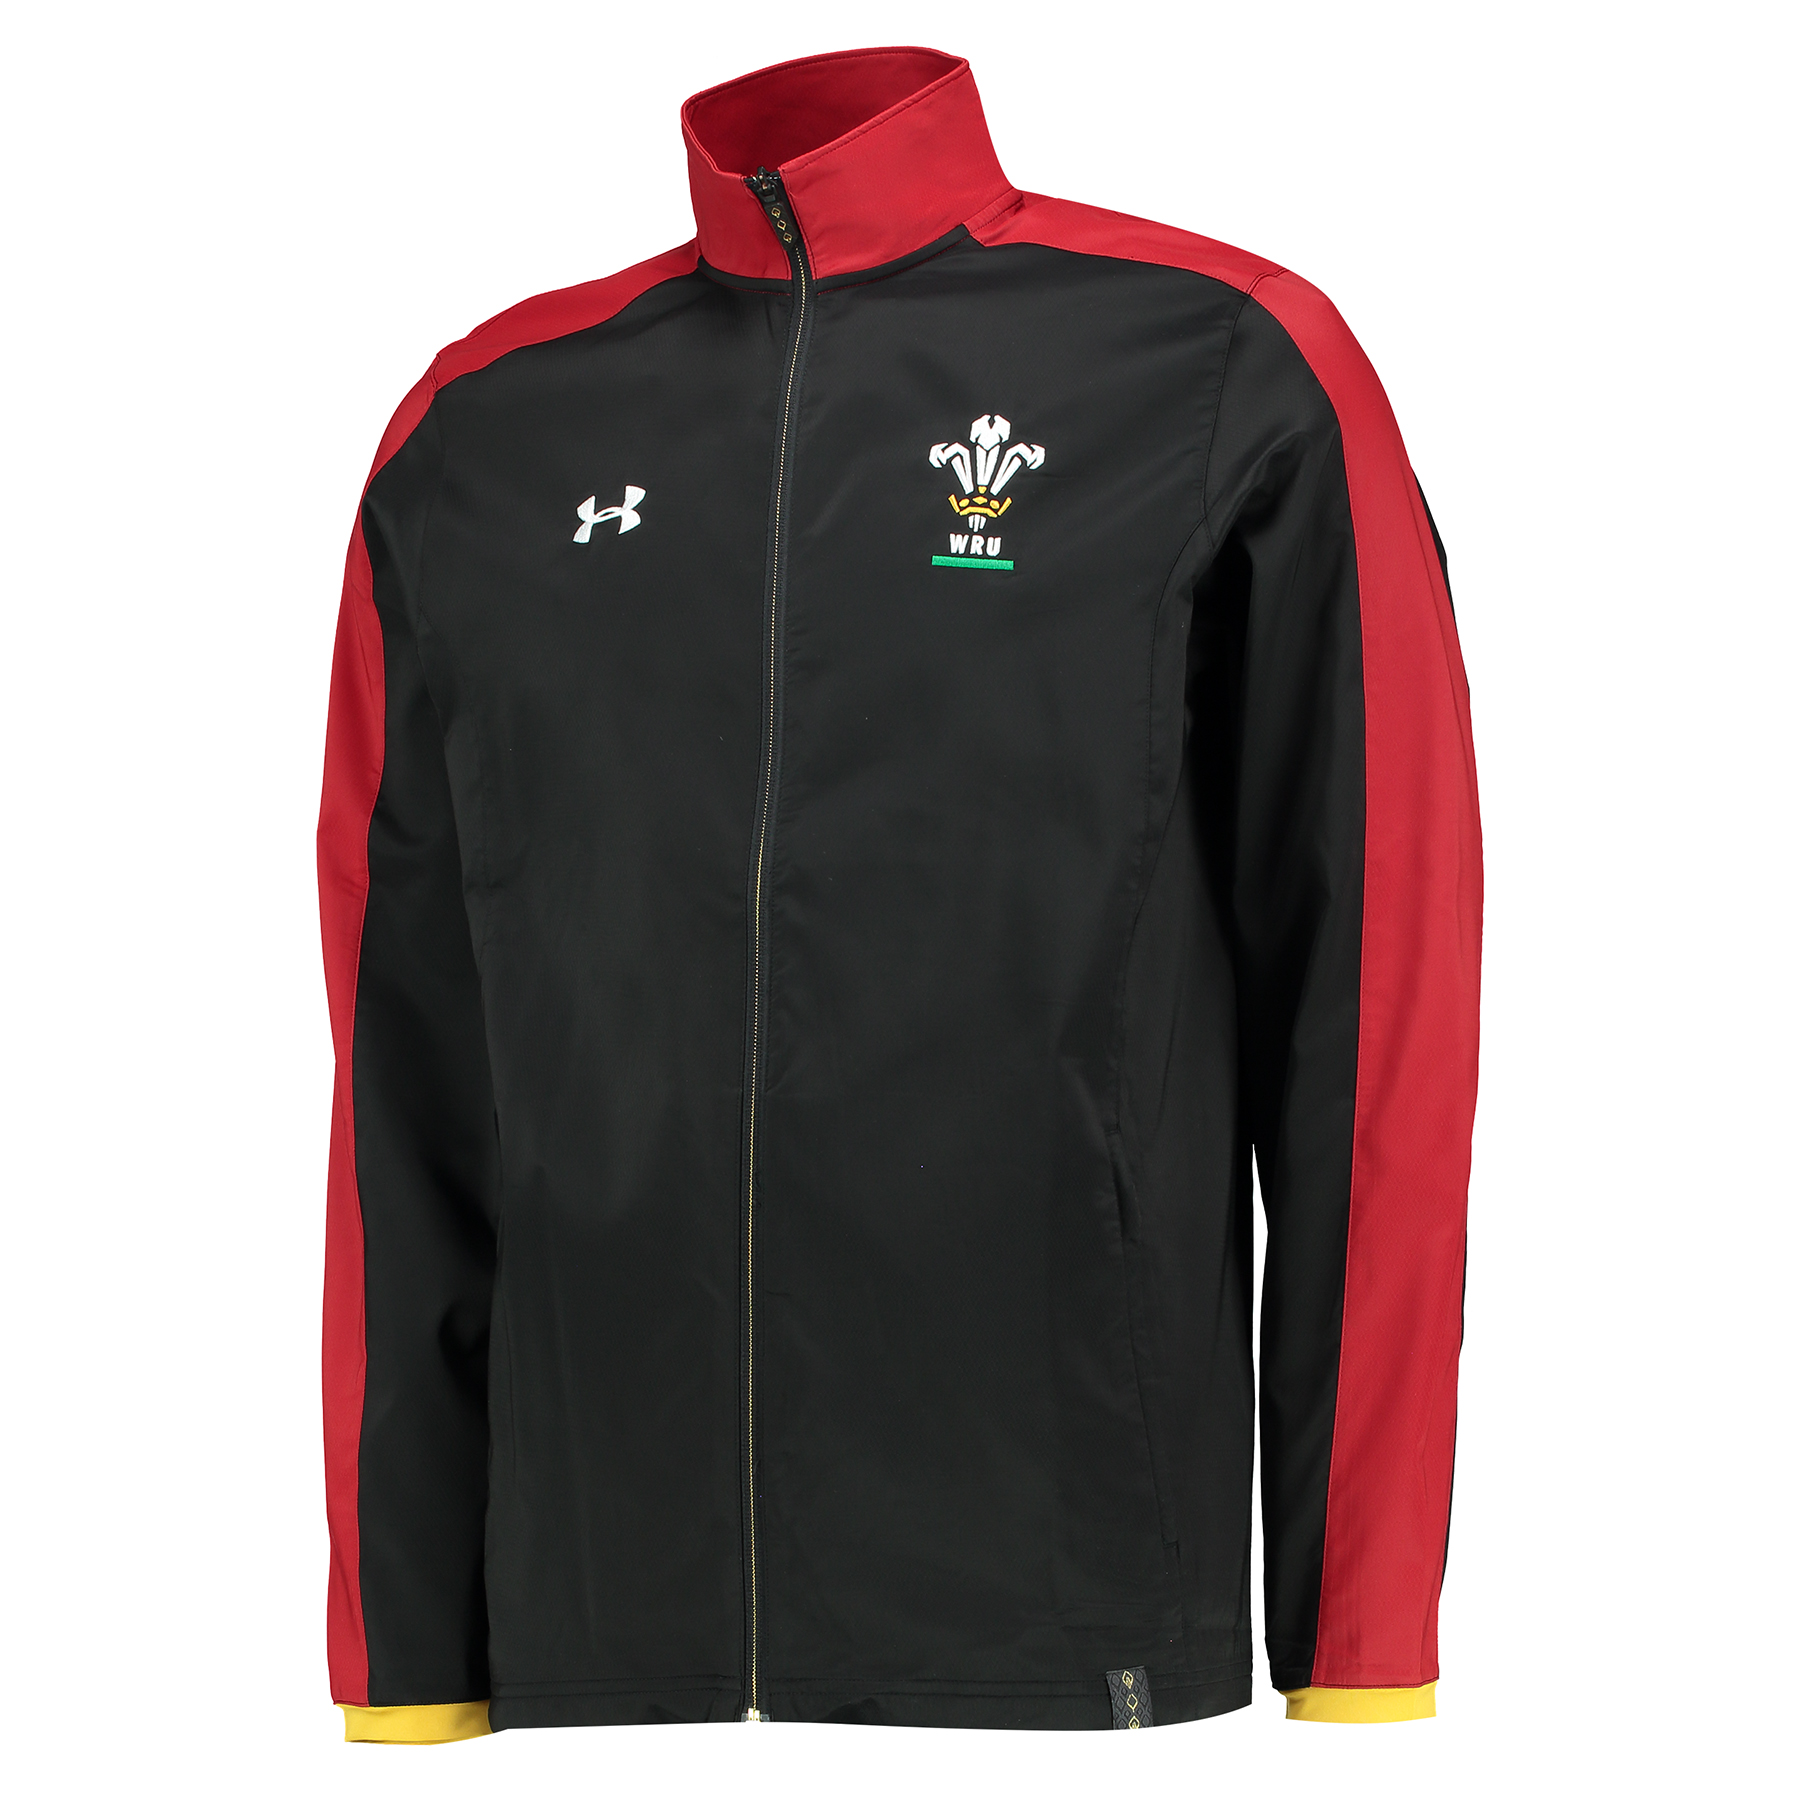 Wales Rugby Travel Jacket 15/16 Black